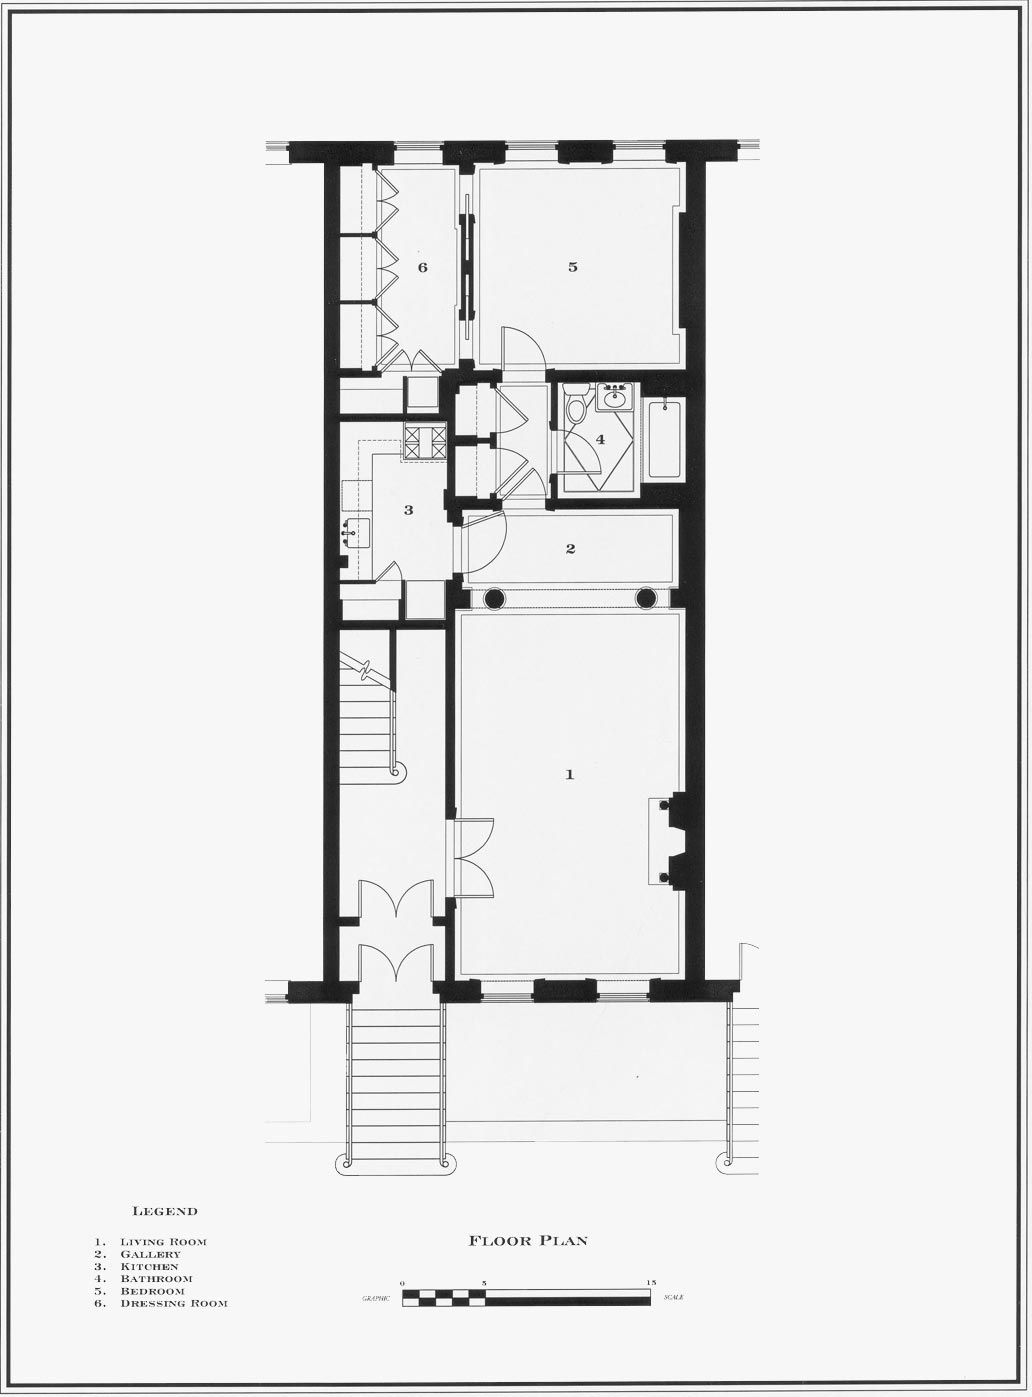 hight resolution of g p schafer architect pllc town house floor plan plan design city living